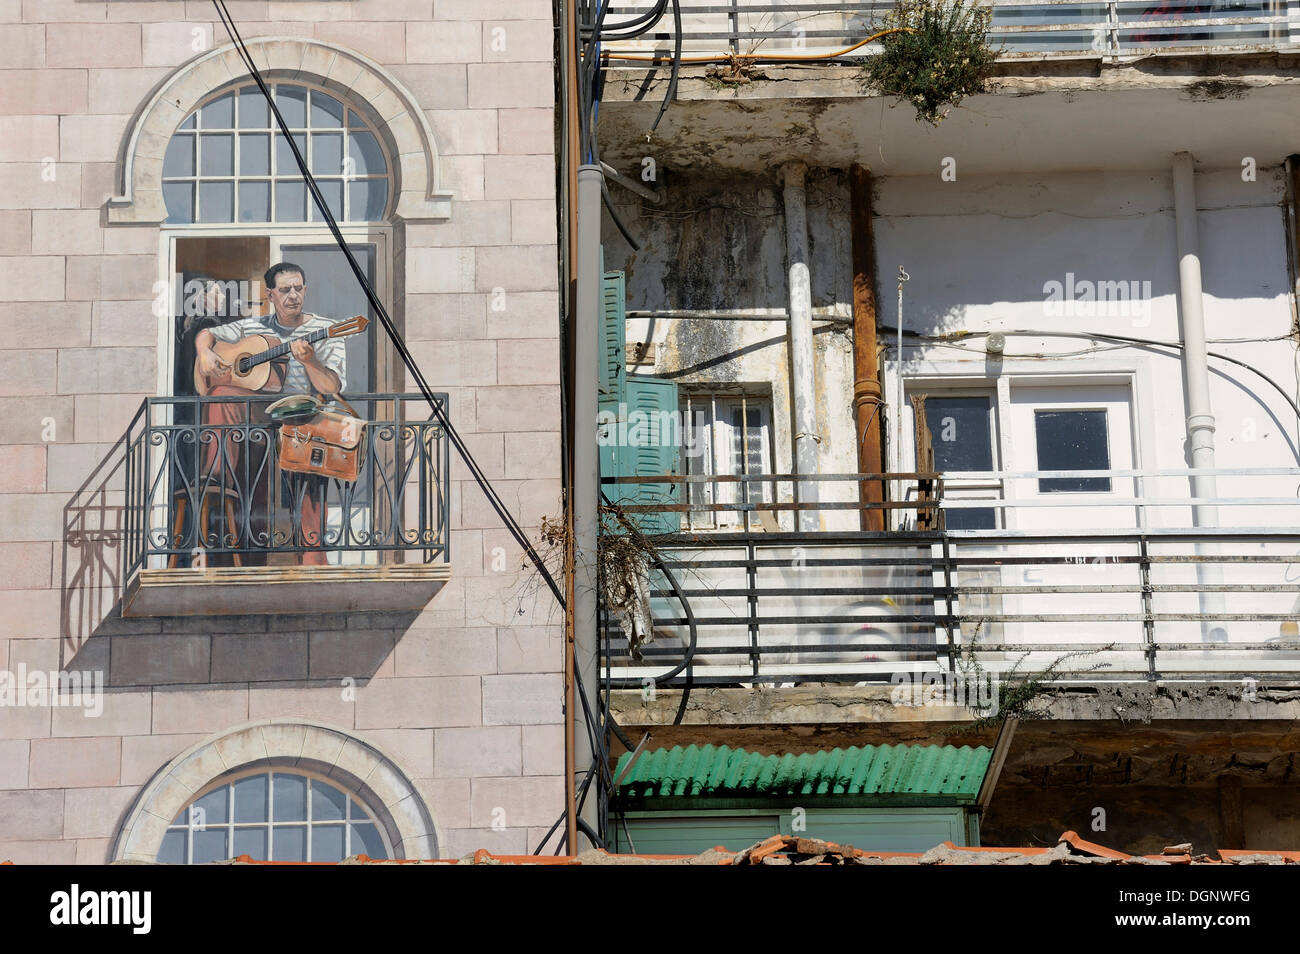 Detail of a mural on a building, Jaffa Road, Jerusalem, Israel, Middle East - Stock Image